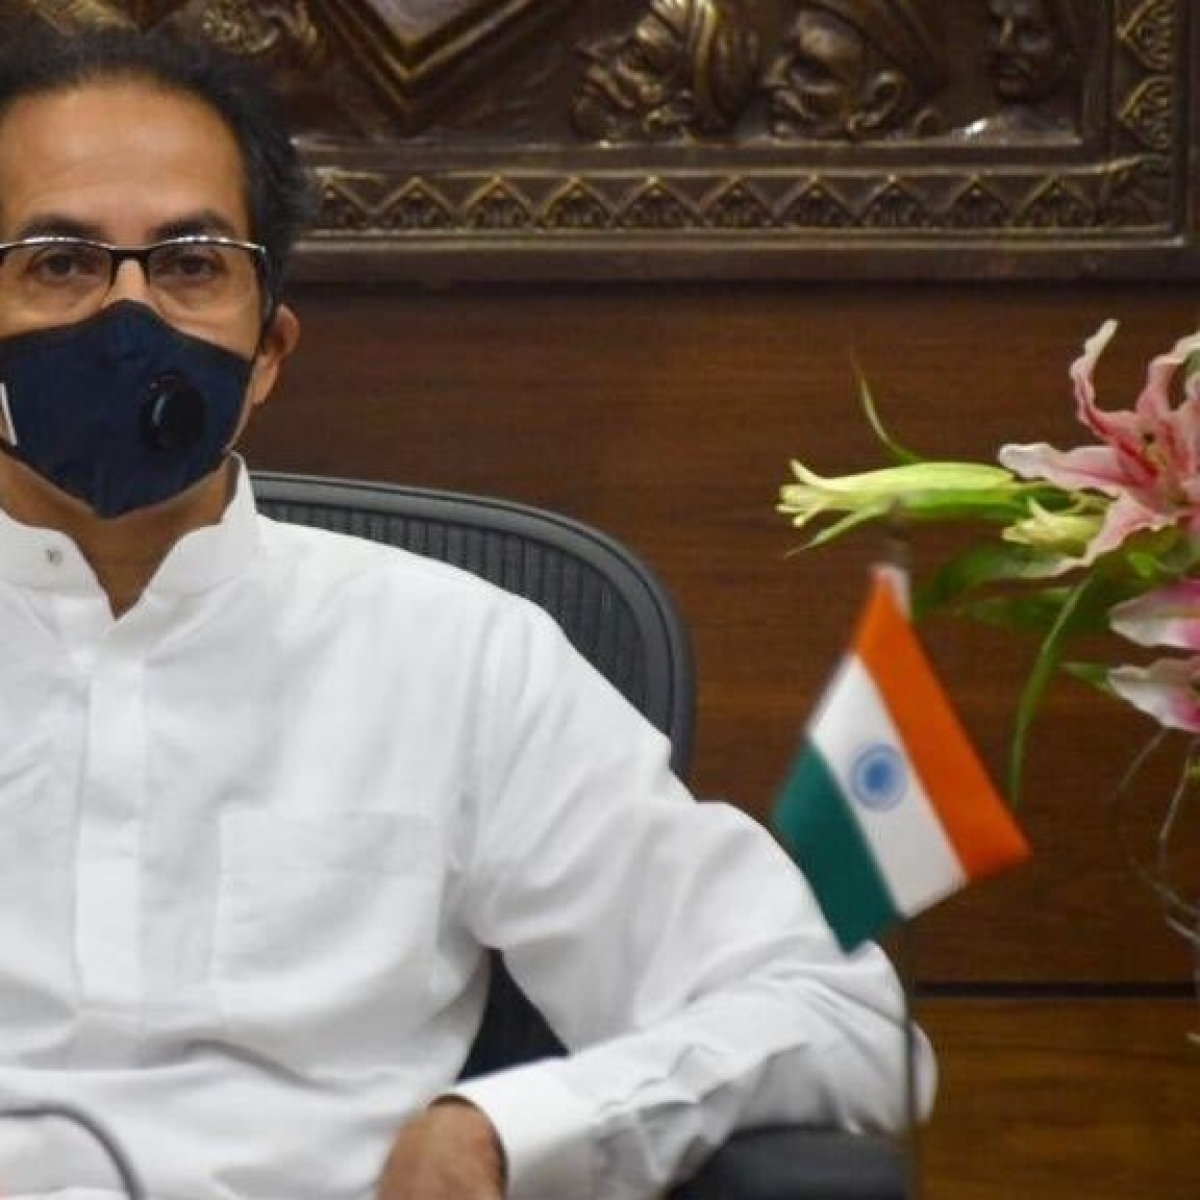 Elgar parishad case: Kin seek jailed activists' release in view of pandemic, write to Maha CM Uddhav Thackeray